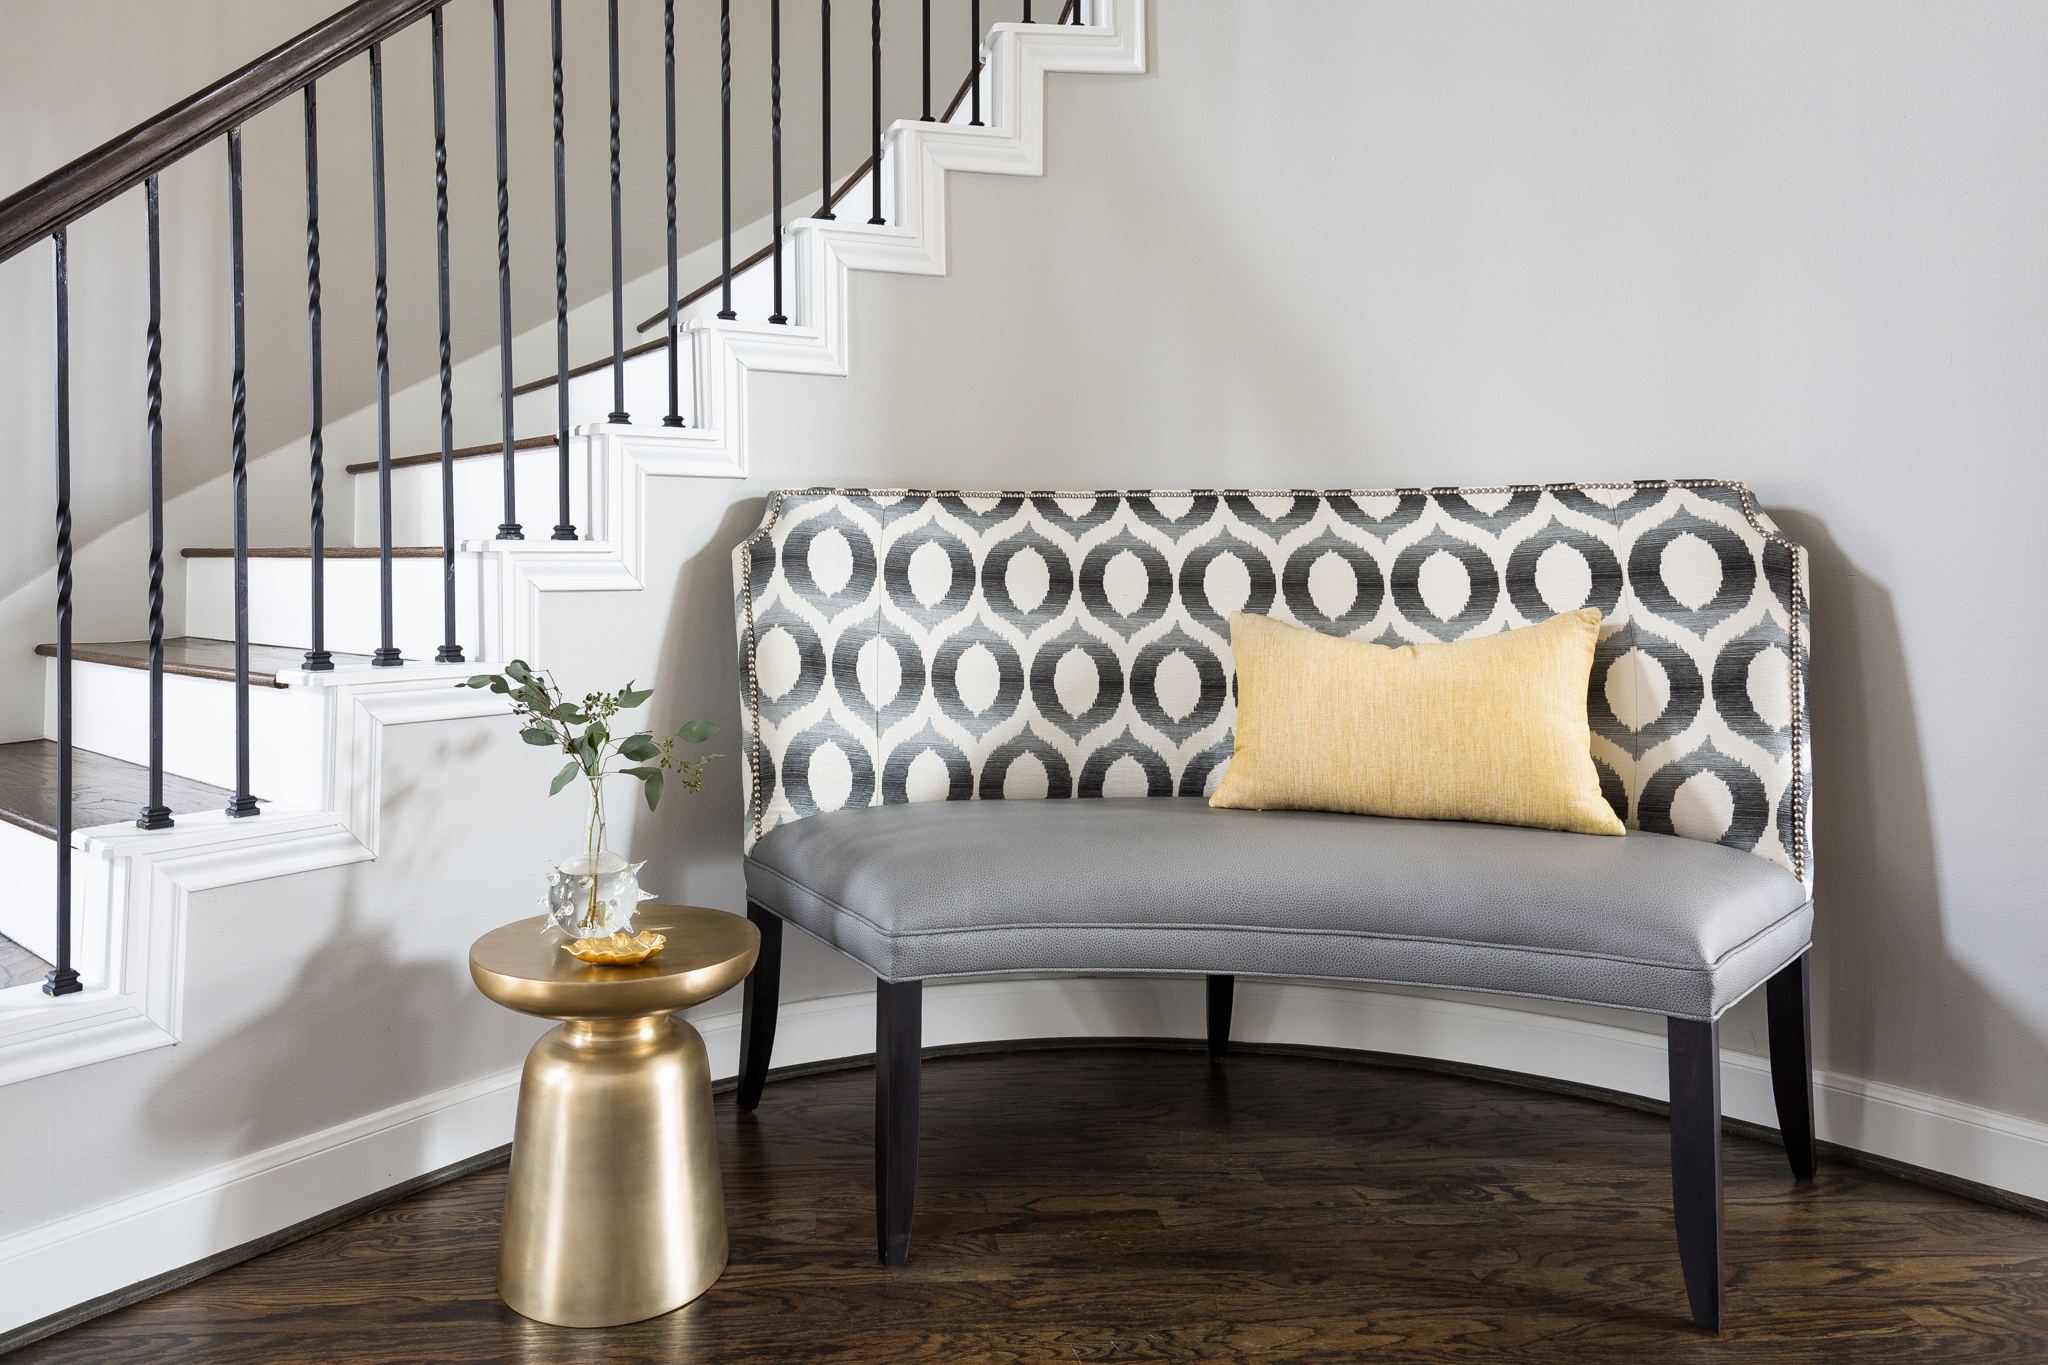 BEFORE AND AFTER - A Fresh, Light Family-Friendly Home Makeover | Carla Aston, Designer | Colleen Scott, Photographer #stair #bench #entryhall